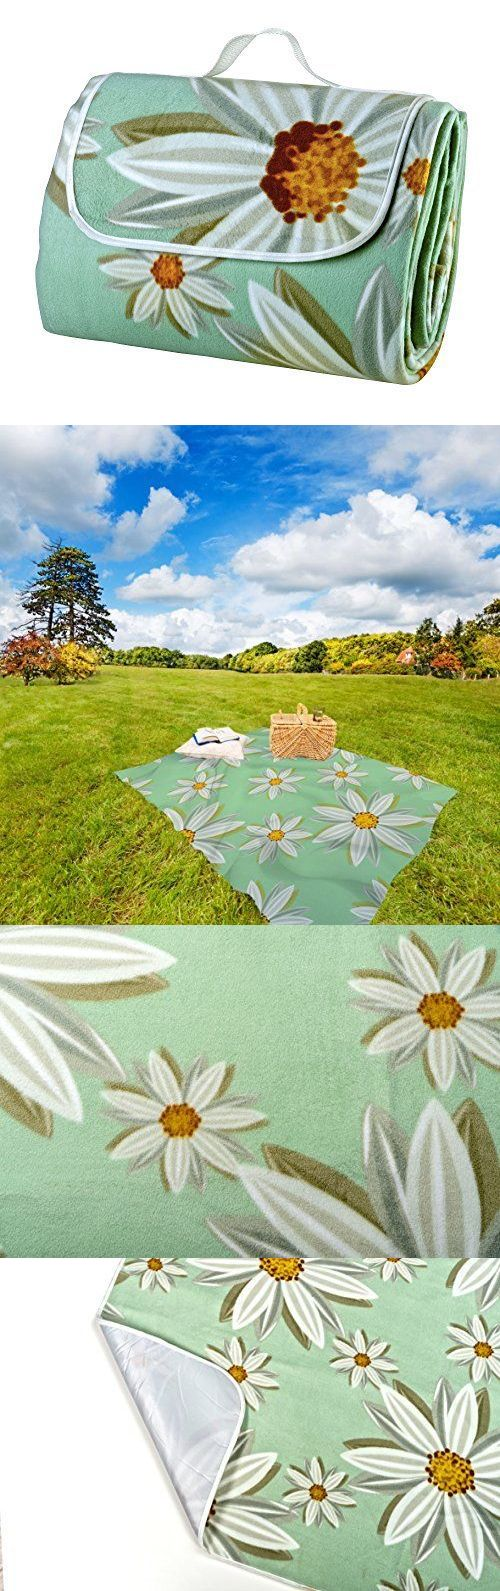 Blankets and Liners 111261: Extra Large Picnic Blanket And Play Mat With Waterproof And Machine Washable Backing -> BUY IT NOW ONLY: $129.99 on eBay!